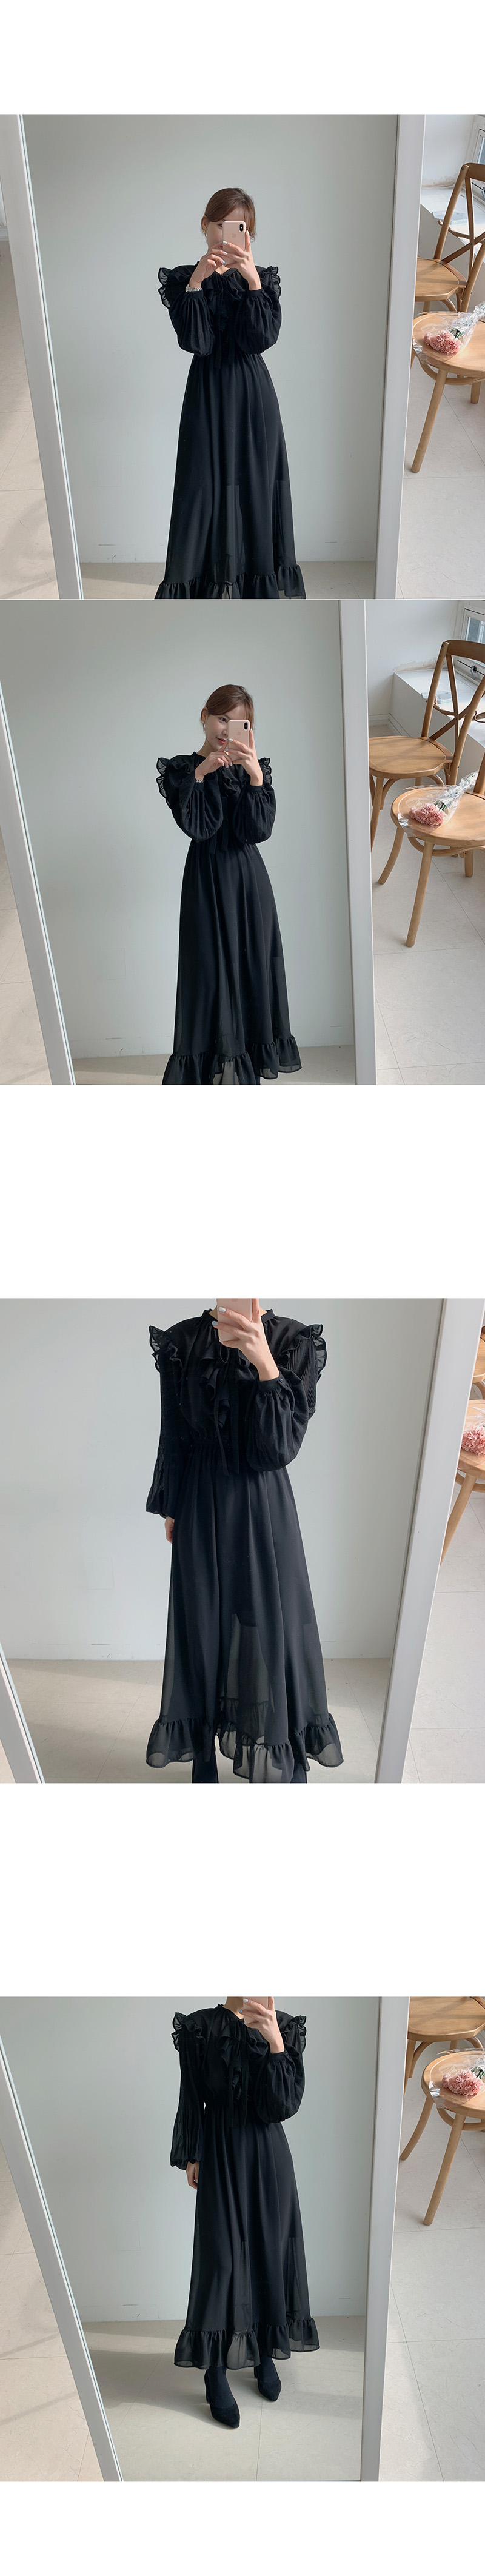 H97f3fe4a590e47648e5e5bfb0fd8ca1f6 - Autumn O-Neck Long Sleeves Chiffon Ruffles Maxi Dress